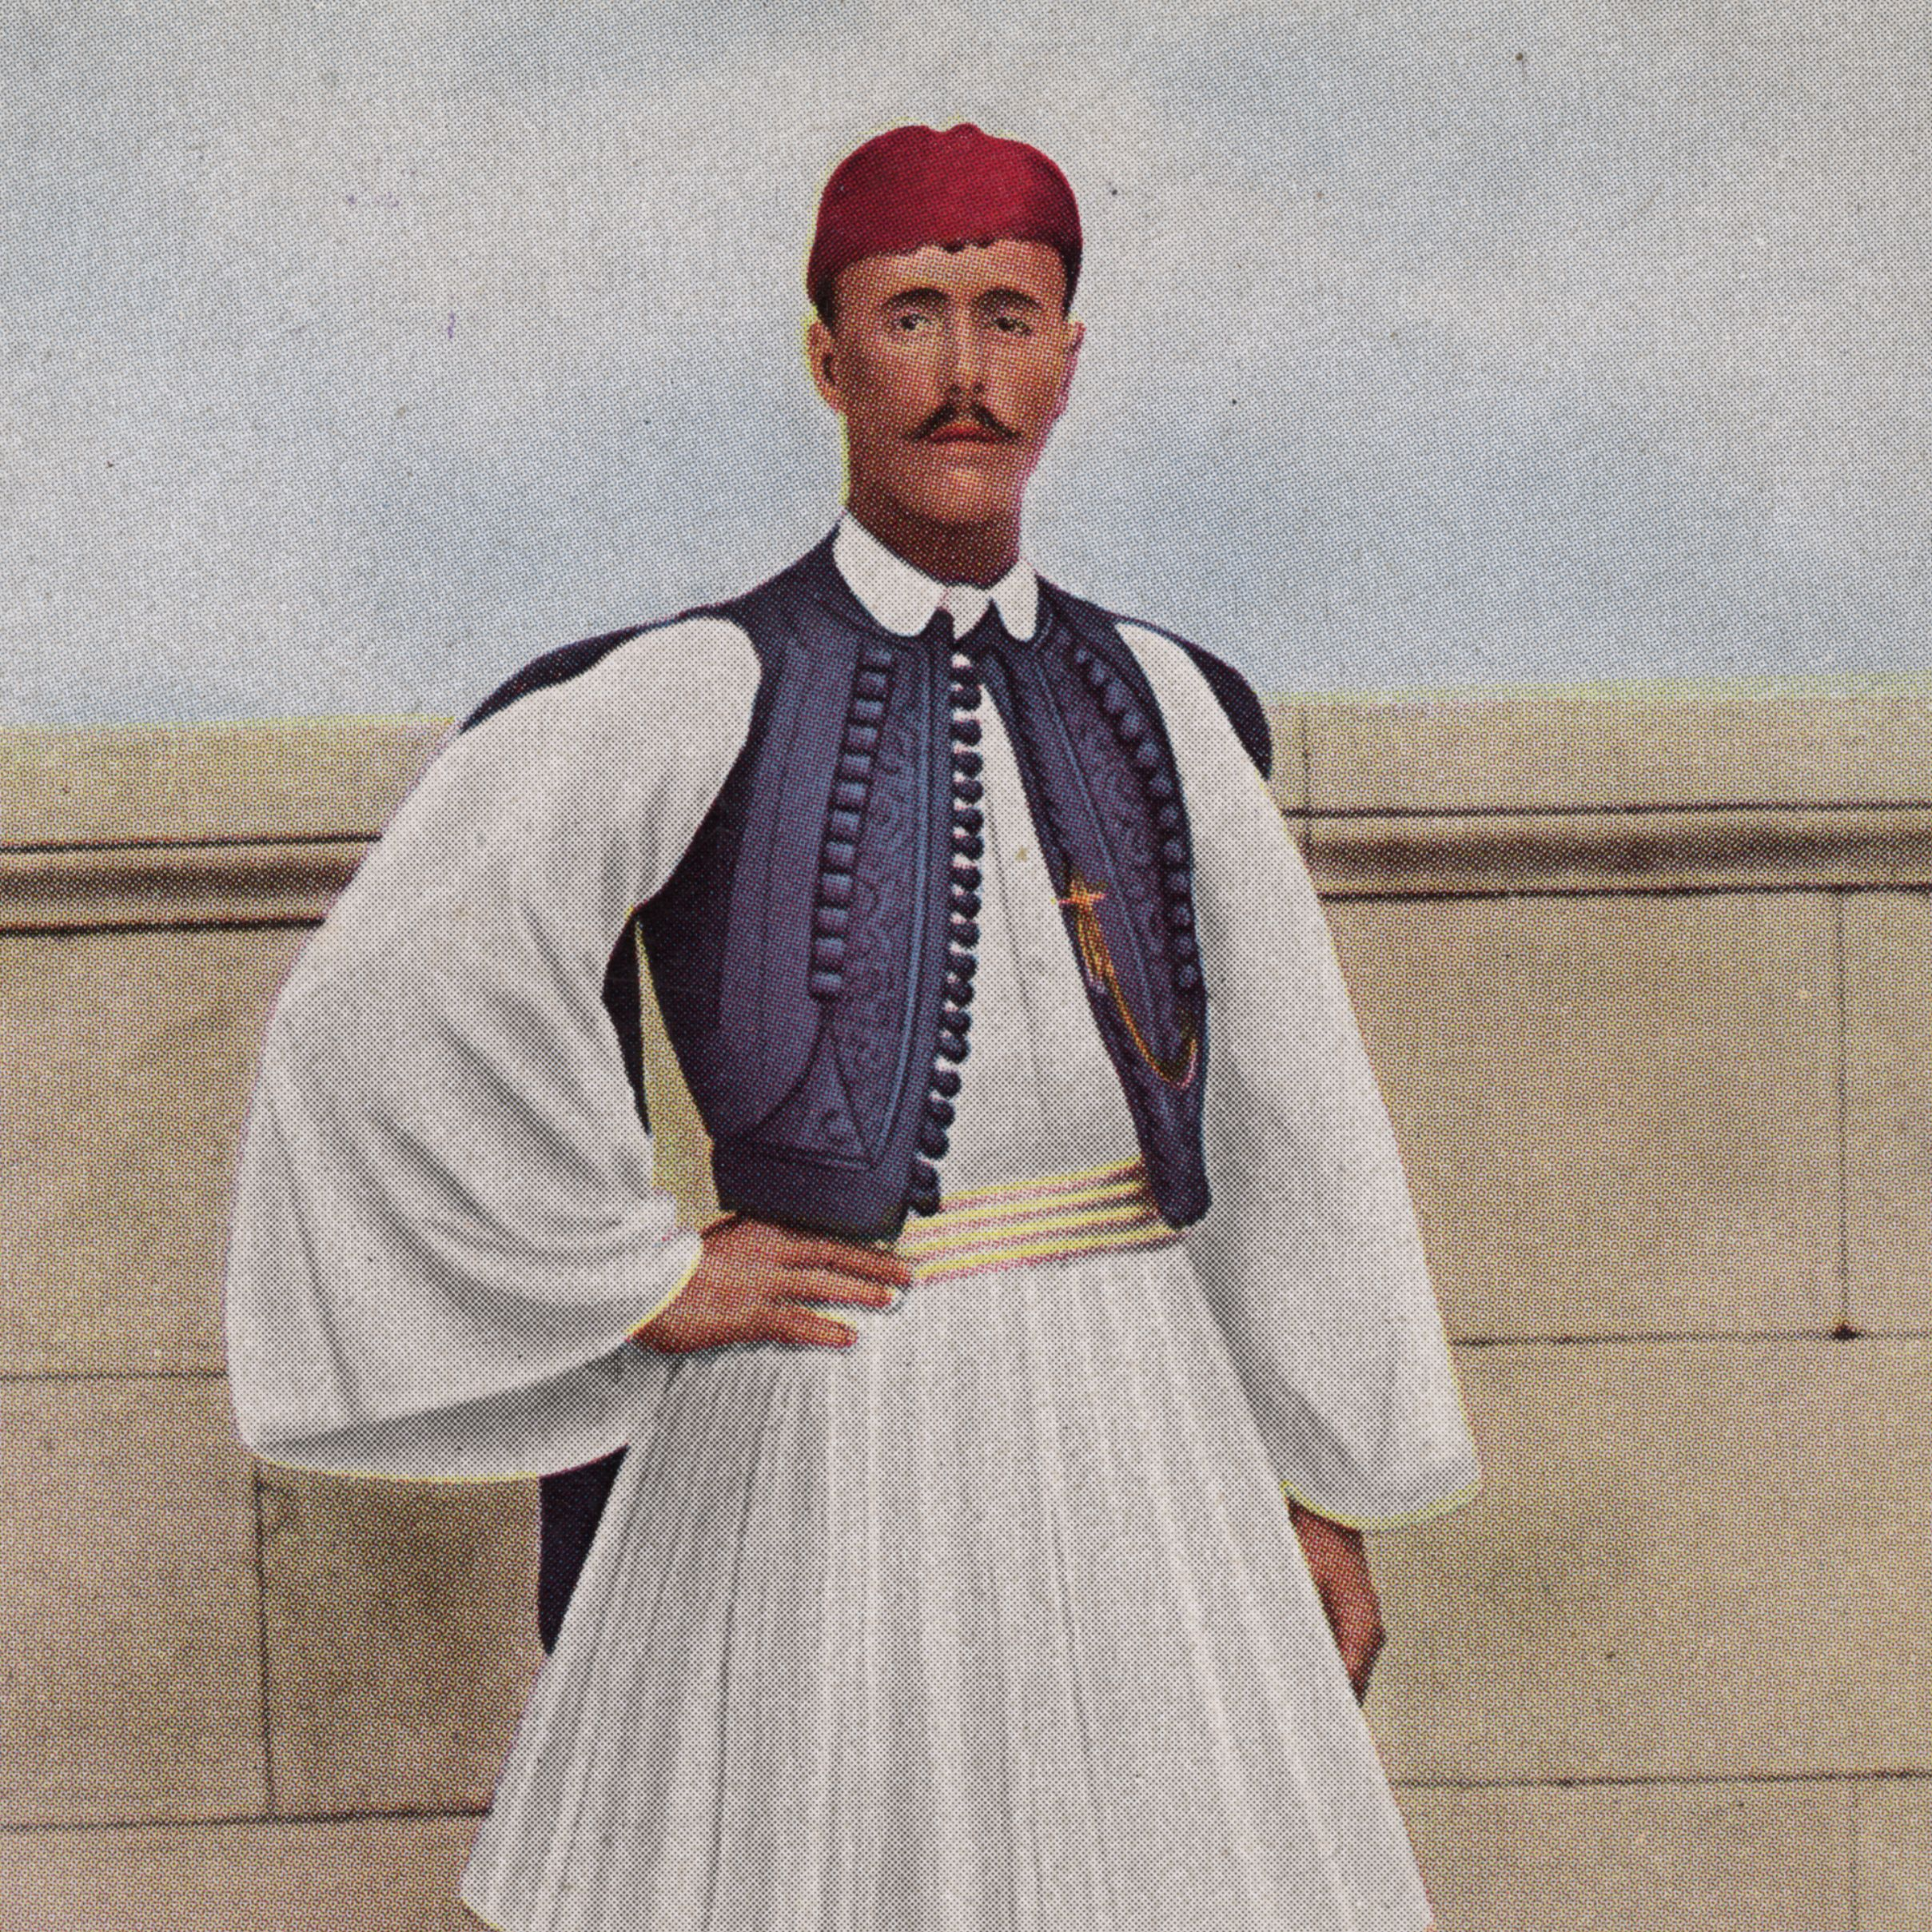 """<p>Greek shepherd Spyridon Louis is the winner of the 40 km marathon at the first modern Olympics games held in Athens in 1986. Women are not <a href=""""http://visforvintage.net/2012/08/03/olympics-sportswear-a-complete-history/"""" target=""""_blank"""">formally invited</a> to the event, though they're not explicitly barred. </p>"""